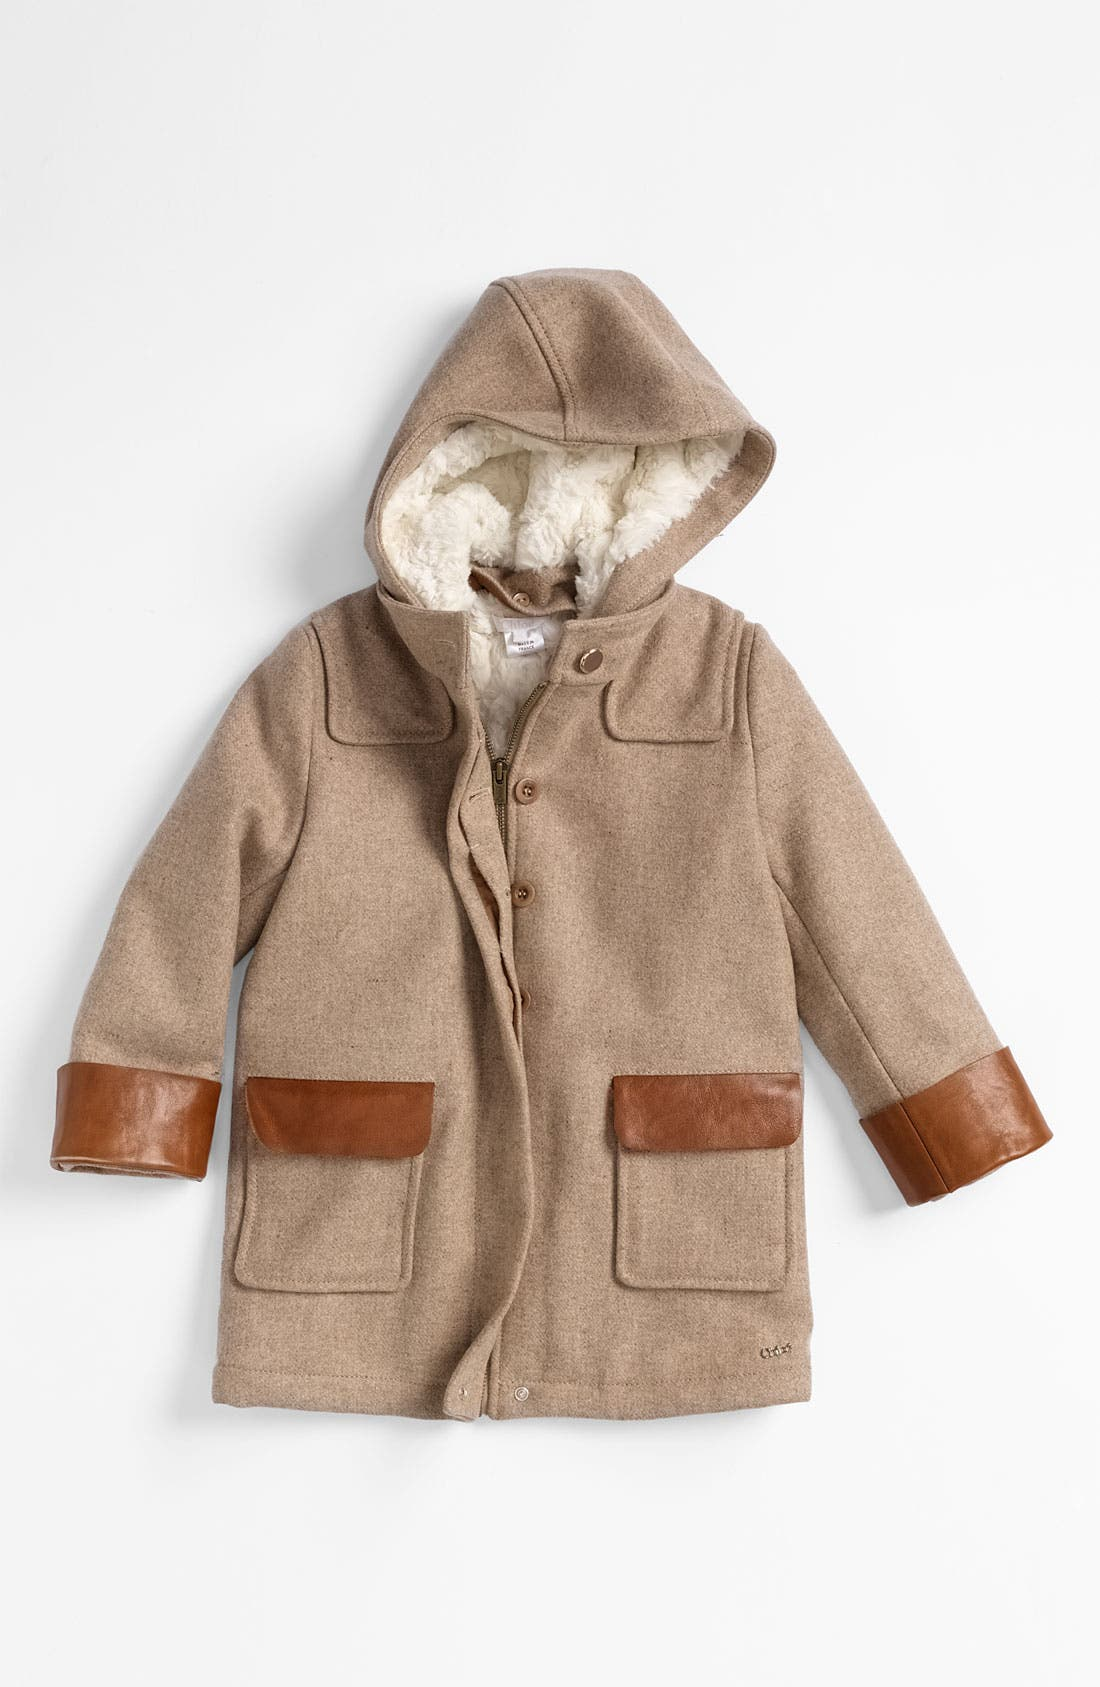 Alternate Image 1 Selected - Chloé Hooded Wool Blend Coat (Little Girls & Big Girls)